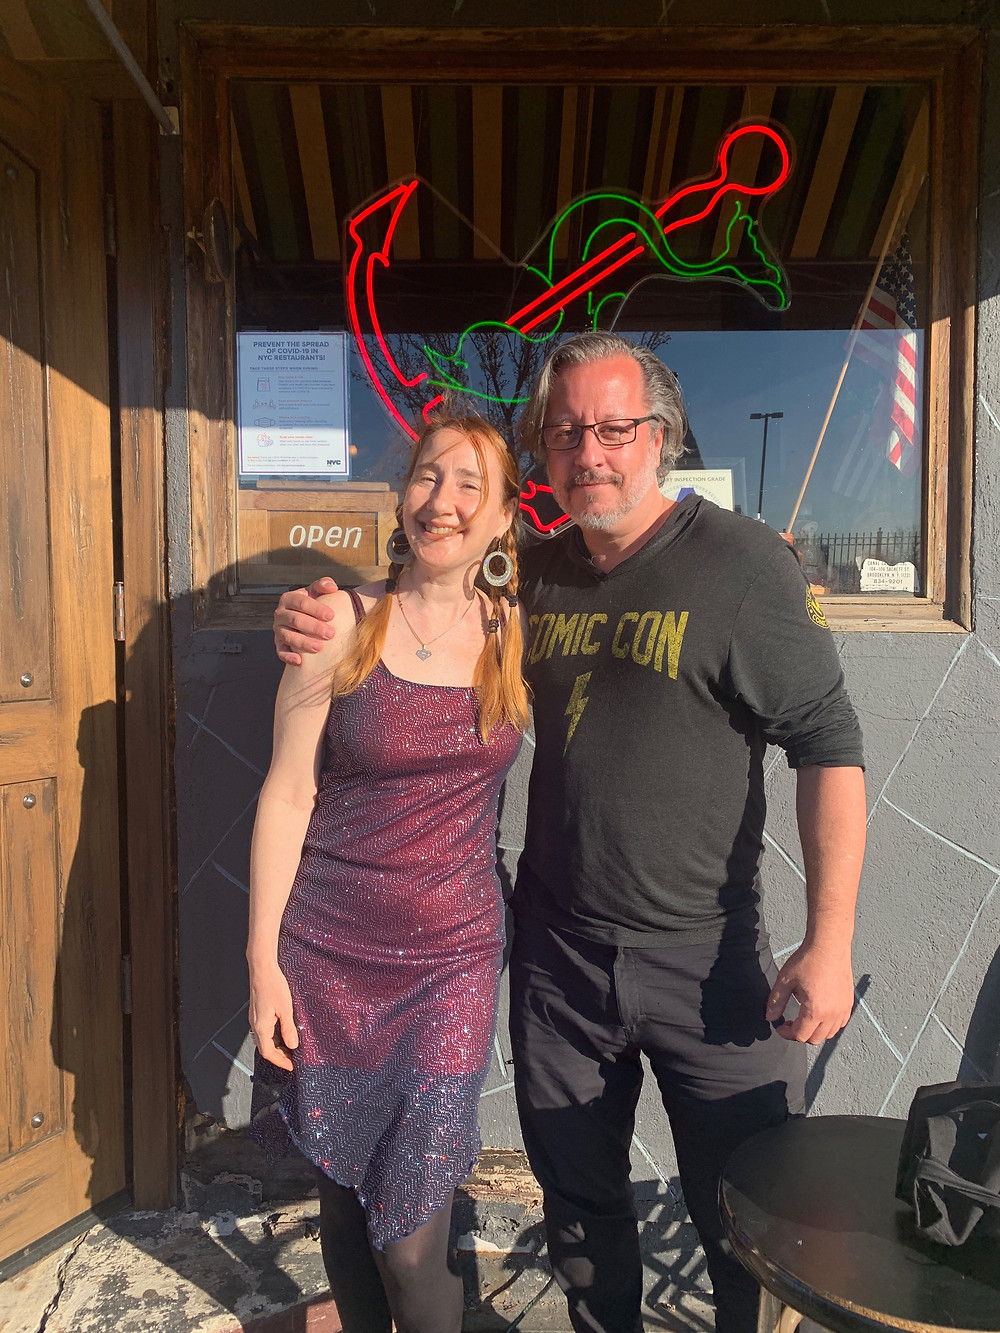 Amy Stein-Milford and Dean Haspiel Outside Sunny's Bar in Red Hook